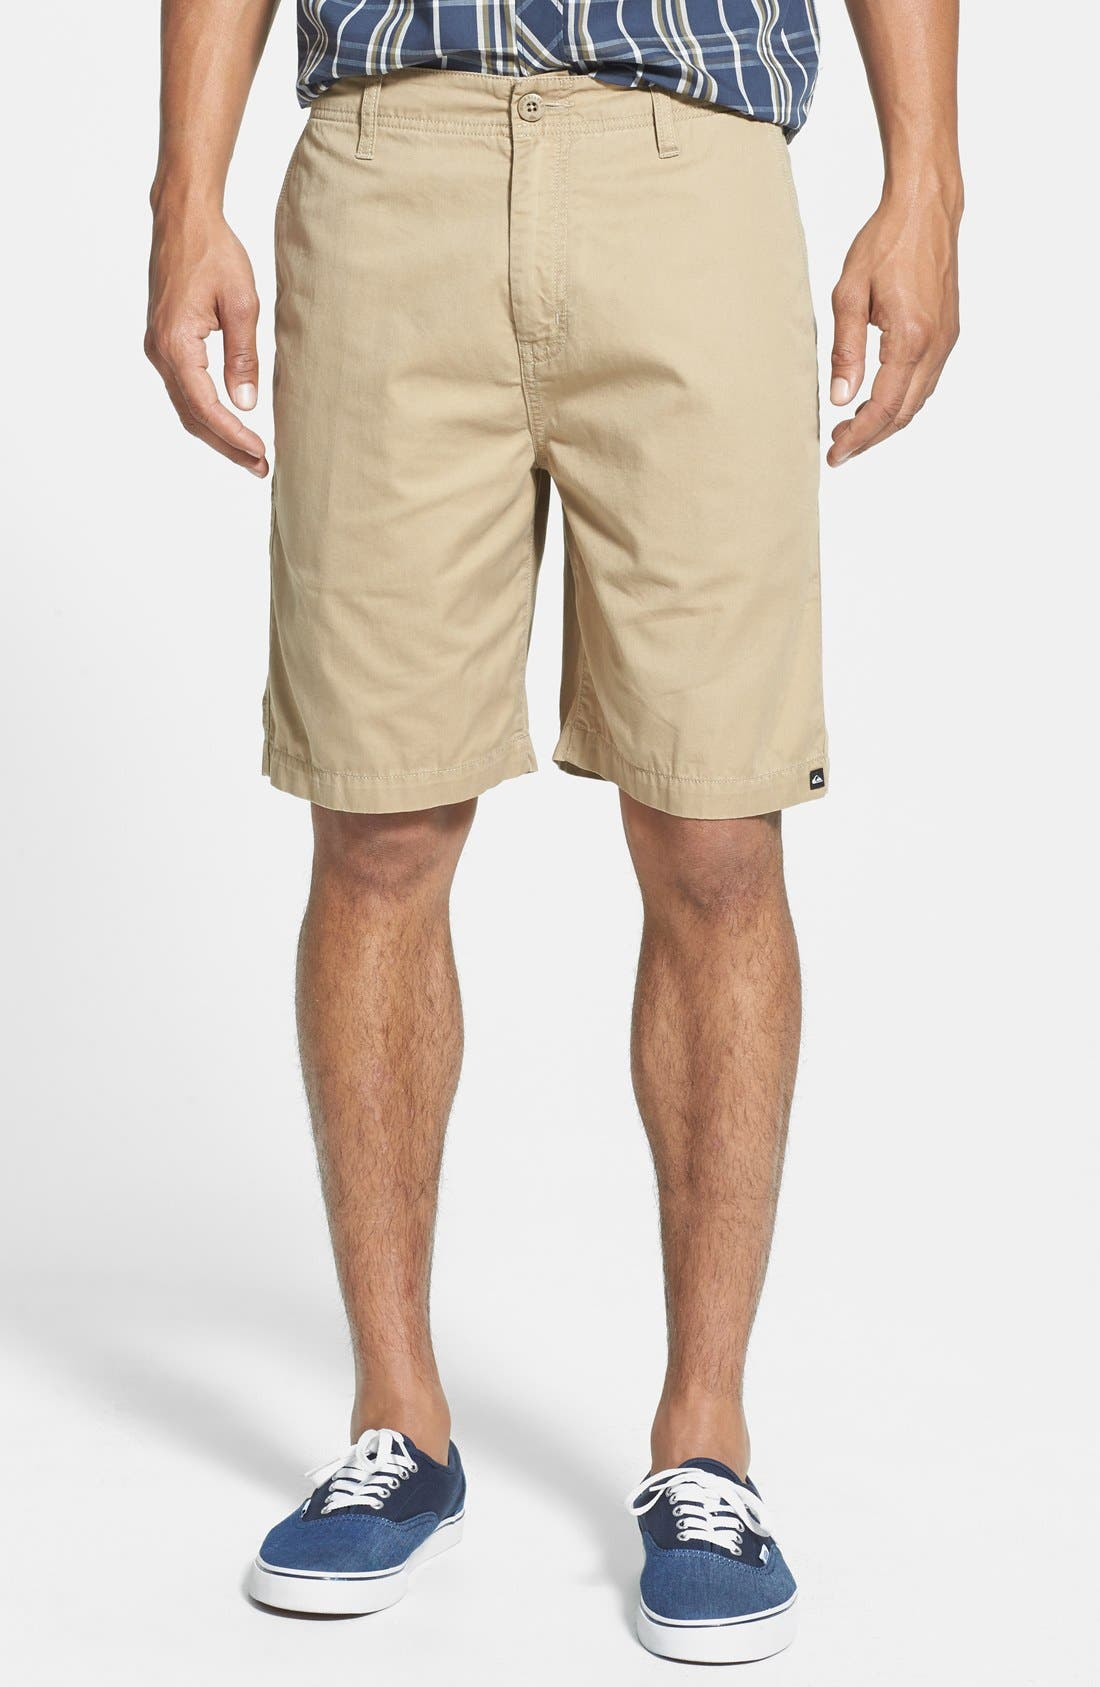 Main Image - Quiksilver 'Minor Road' Shorts